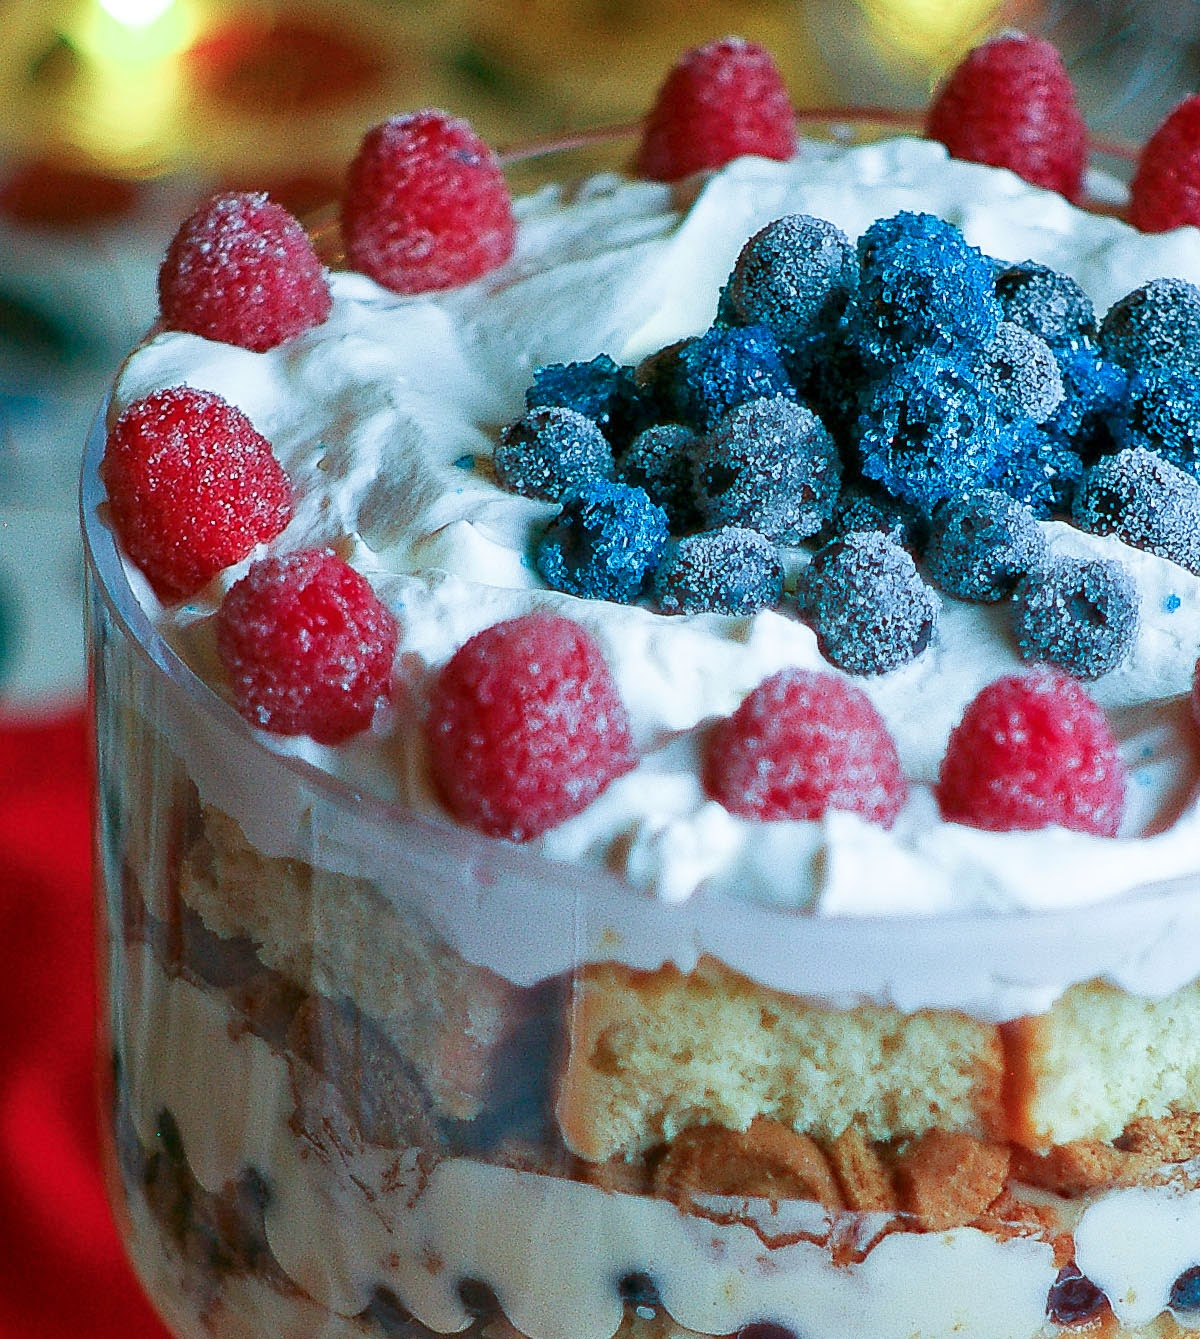 The Yum Yum Factor: Rum and Eggnog Tres Leches Trifle